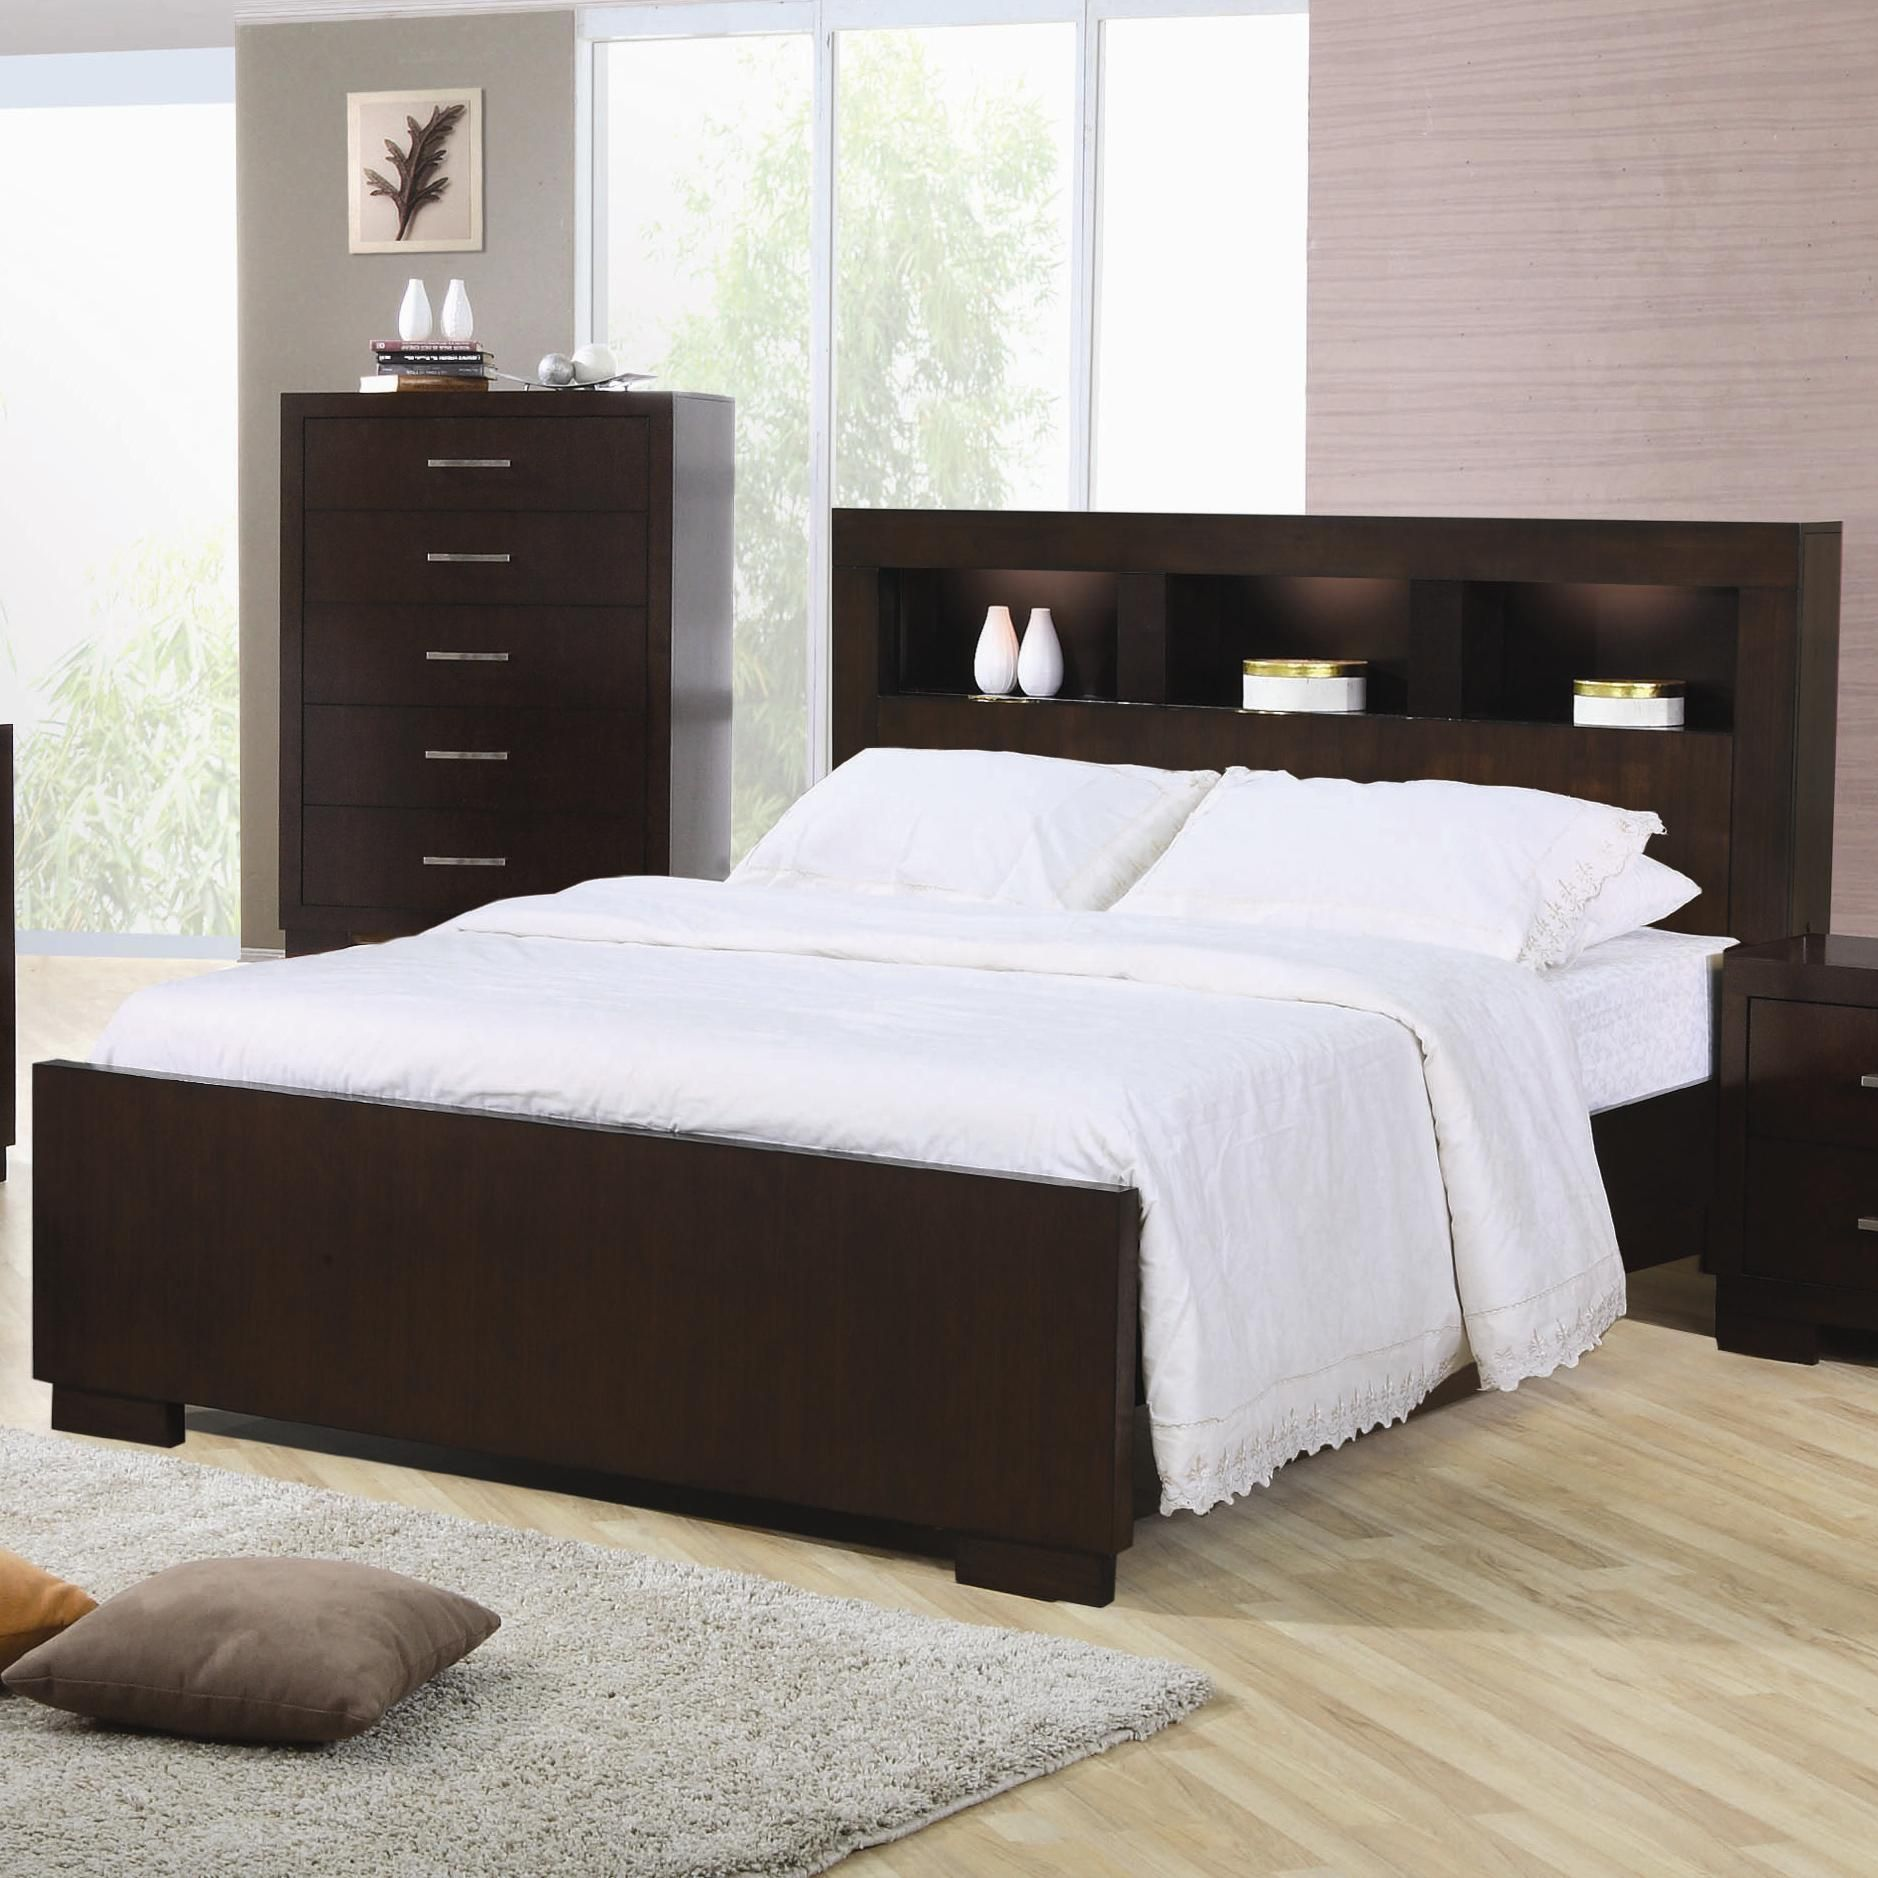 Coaster Jessica King Bed The Collection Is Crafted From Solid Wood And Select Veneers In Light Cuccino Finish Features Full